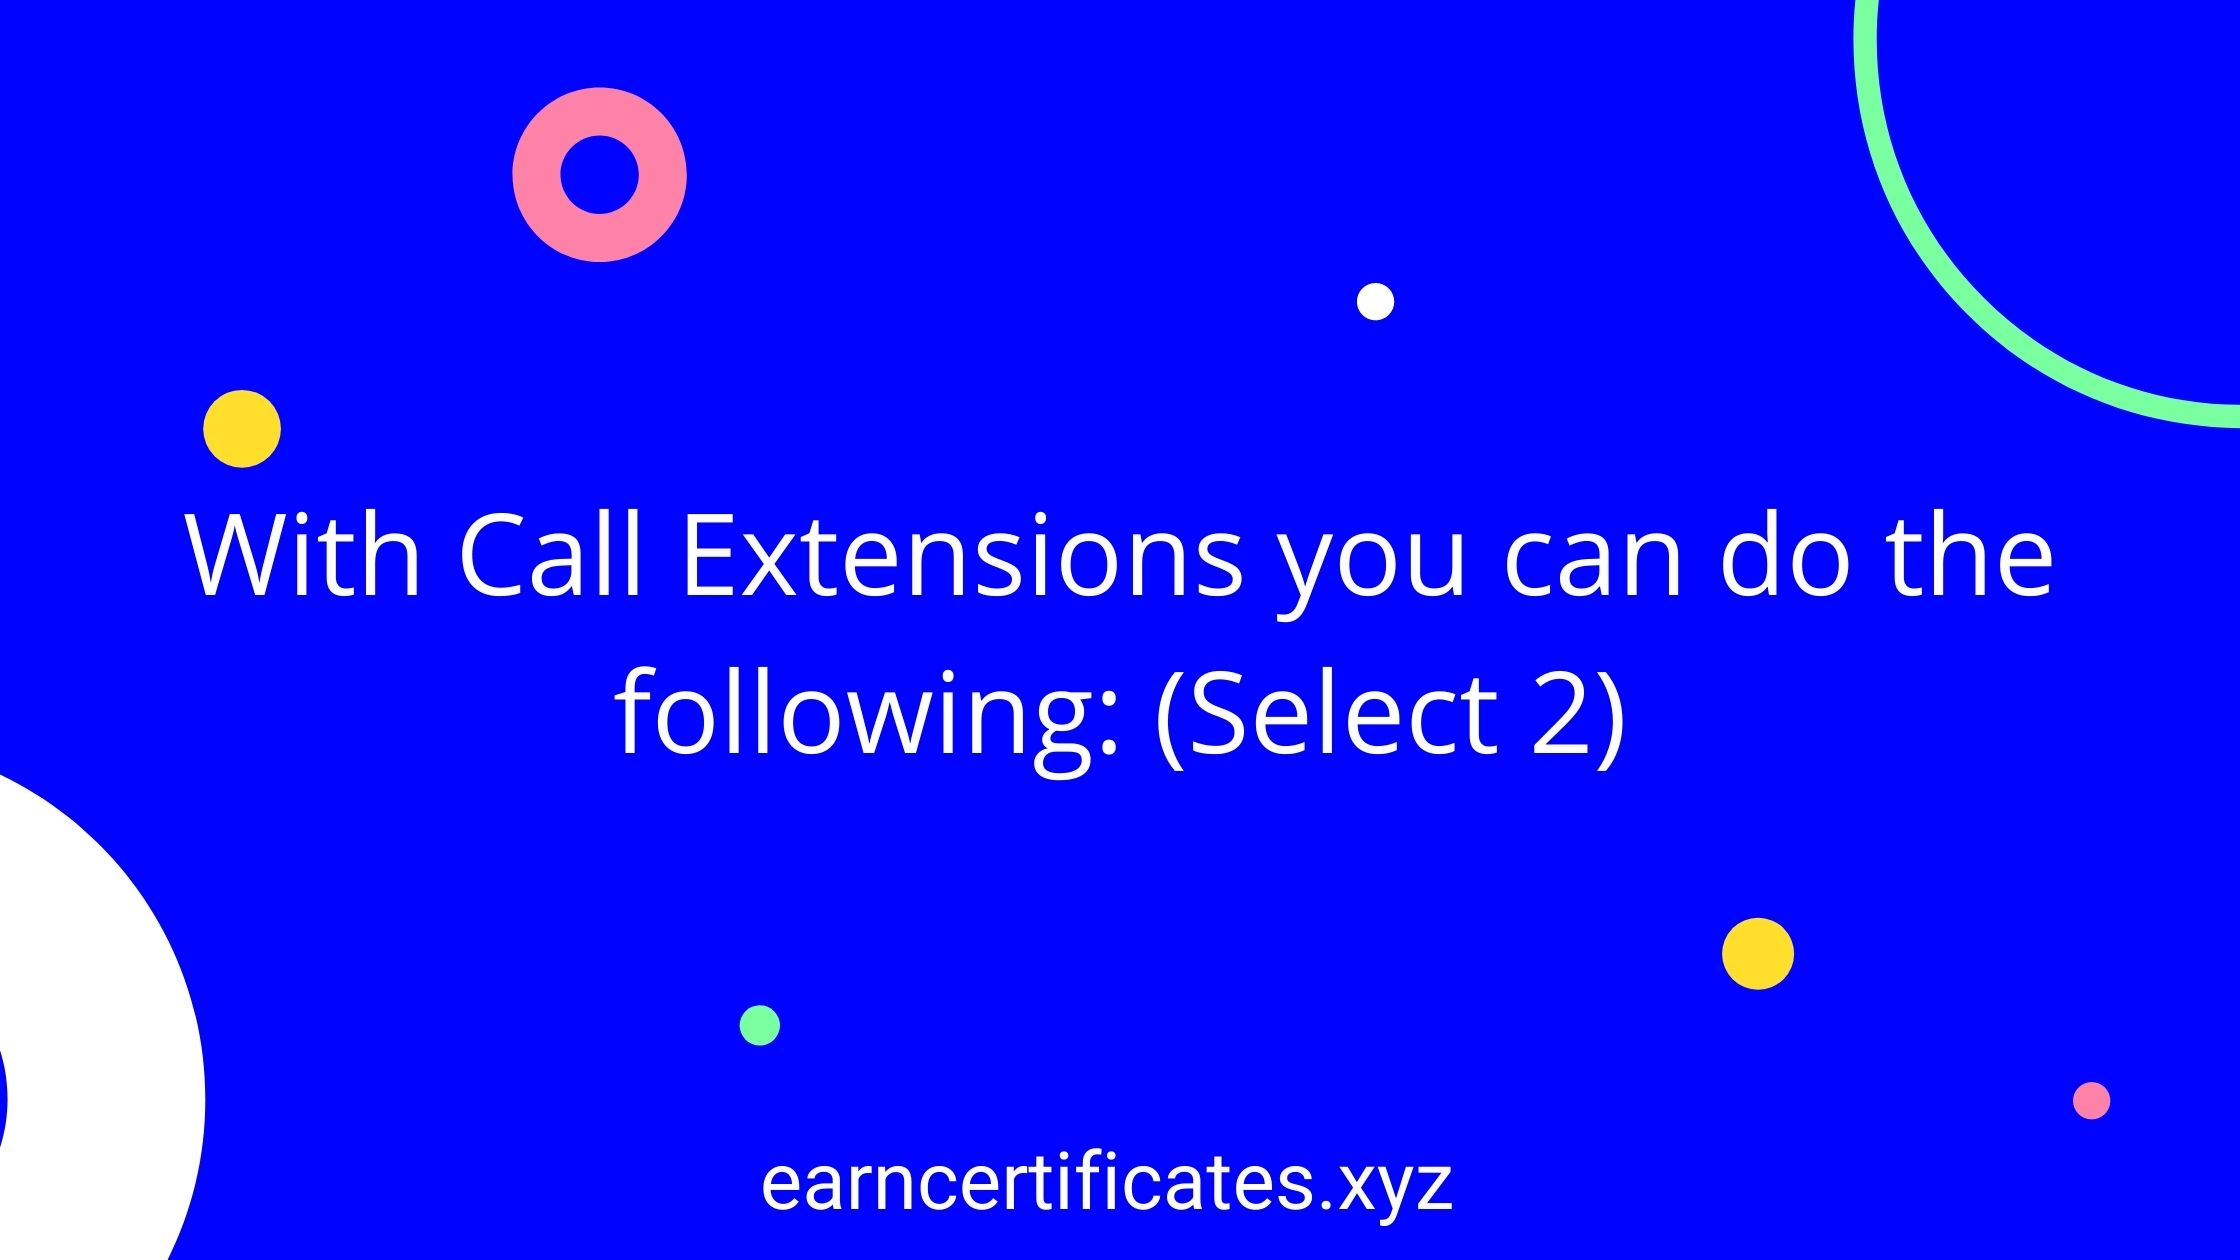 With Call Extensions you can do the following: (Select 2)